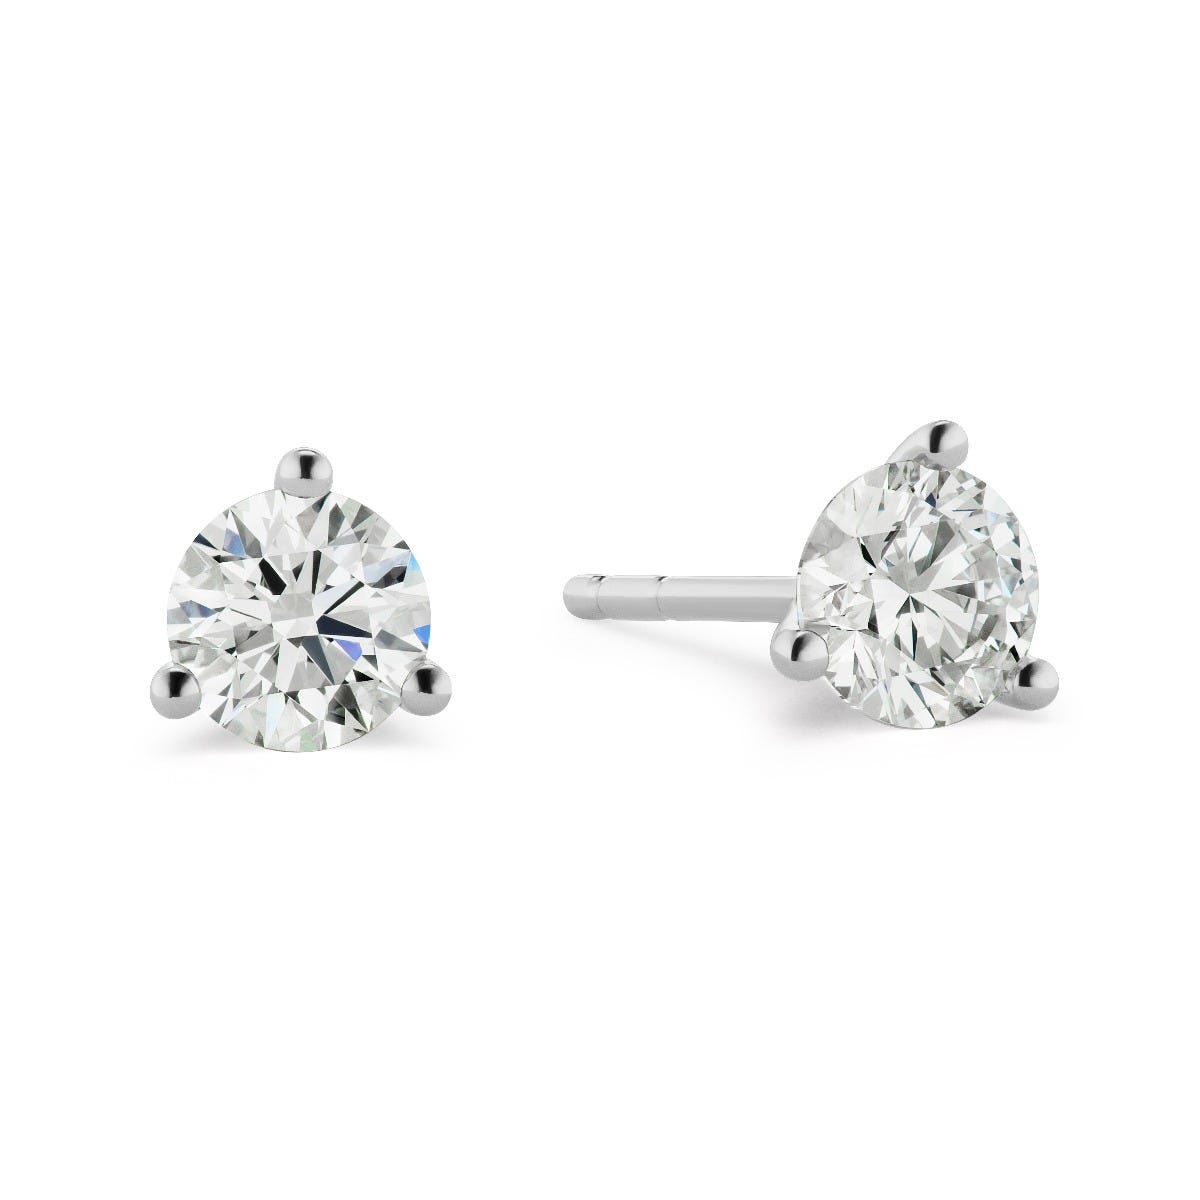 Lab Grown 2ct. Diamond 3-Prong Stud Earrings in 14k White Gold